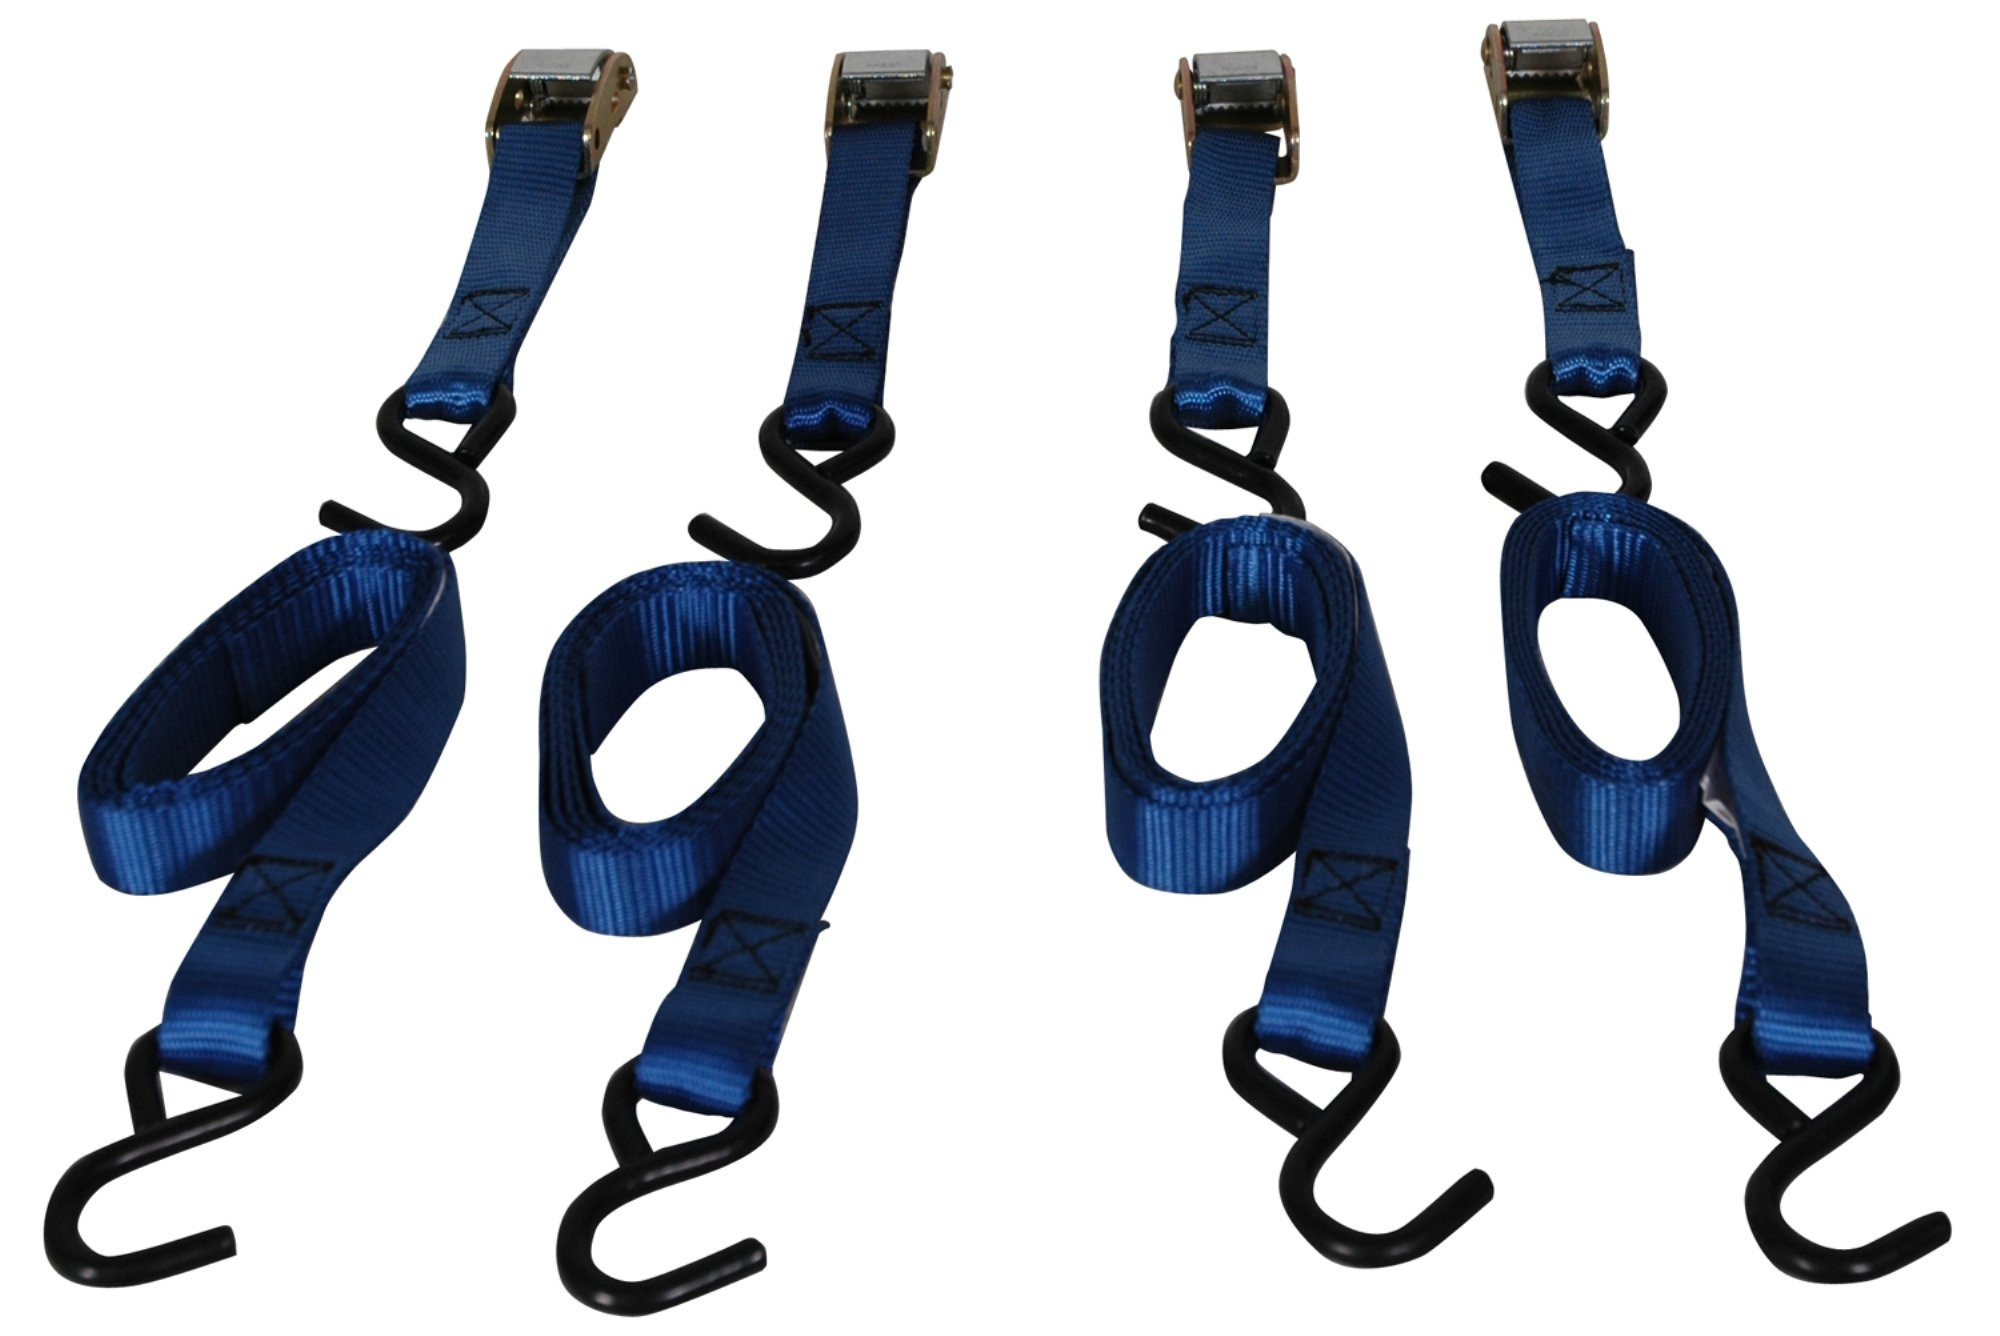 Highland (9210600) 6' Blue Cambuckle Tie Down with Hooks - 4 piece by Highland